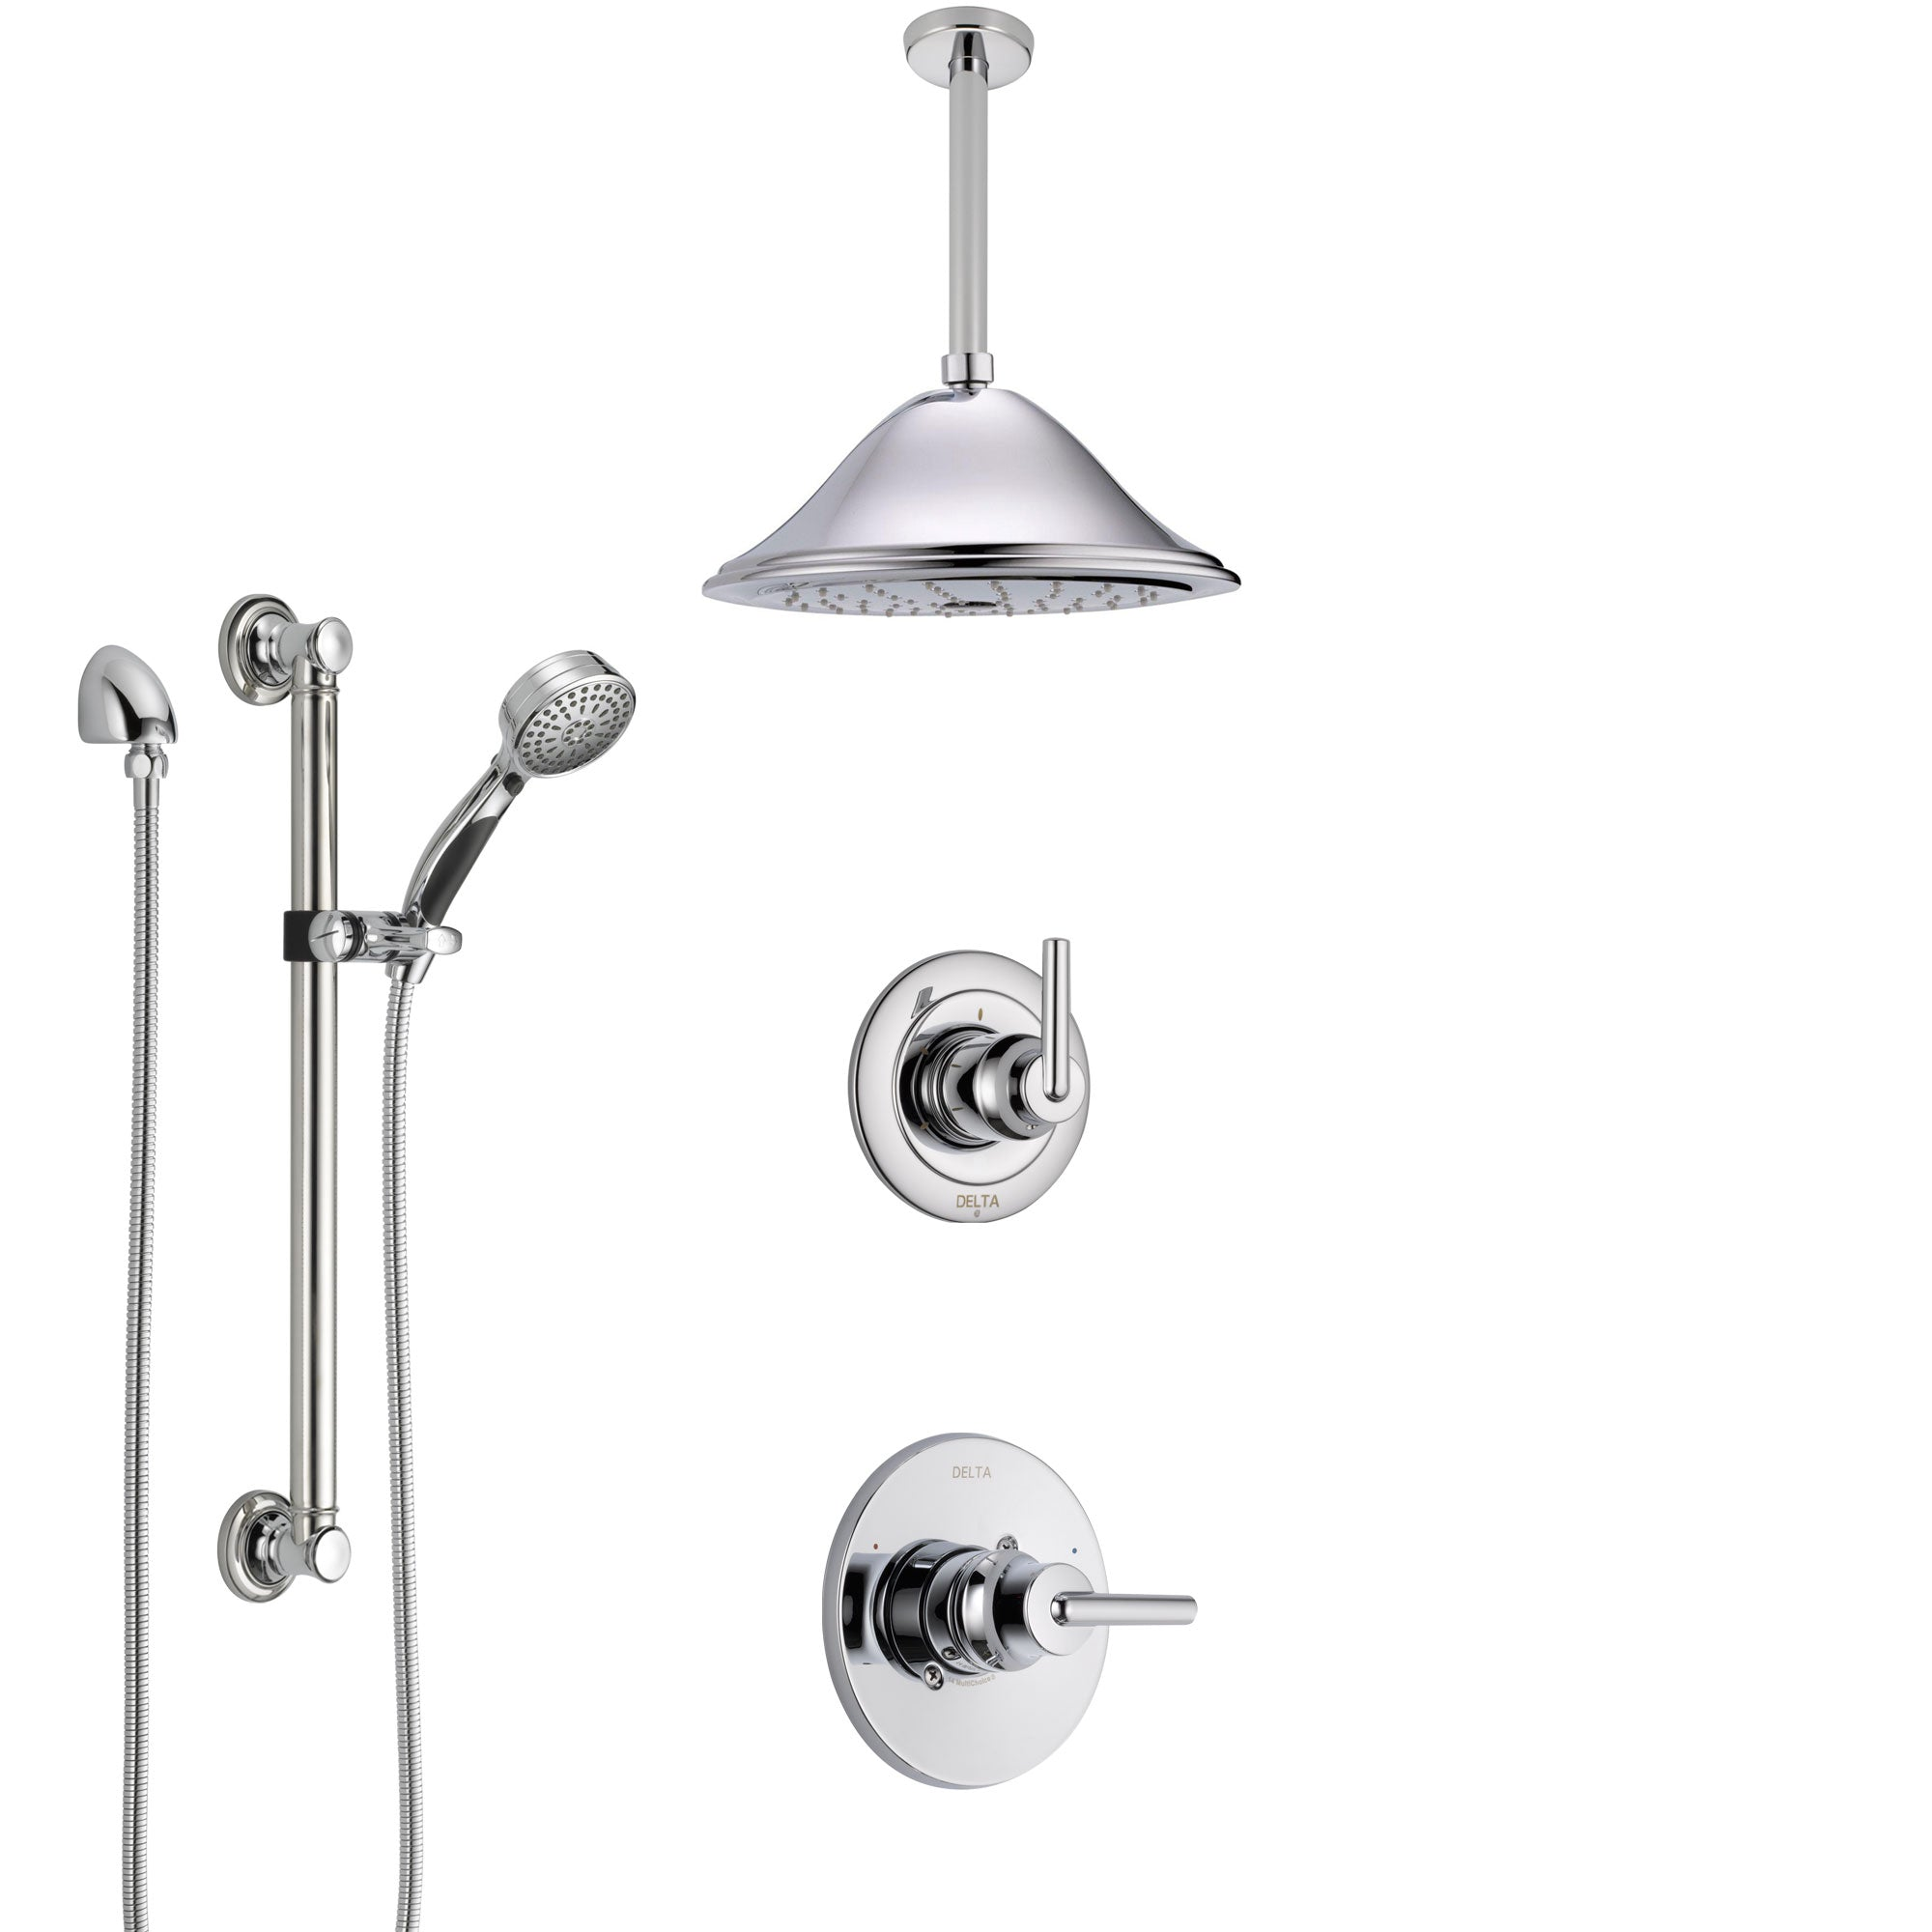 Delta Trinsic Chrome Finish Shower System with Control Handle, 3-Setting Diverter, Ceiling Mount Showerhead, and Hand Shower with Grab Bar SS14591